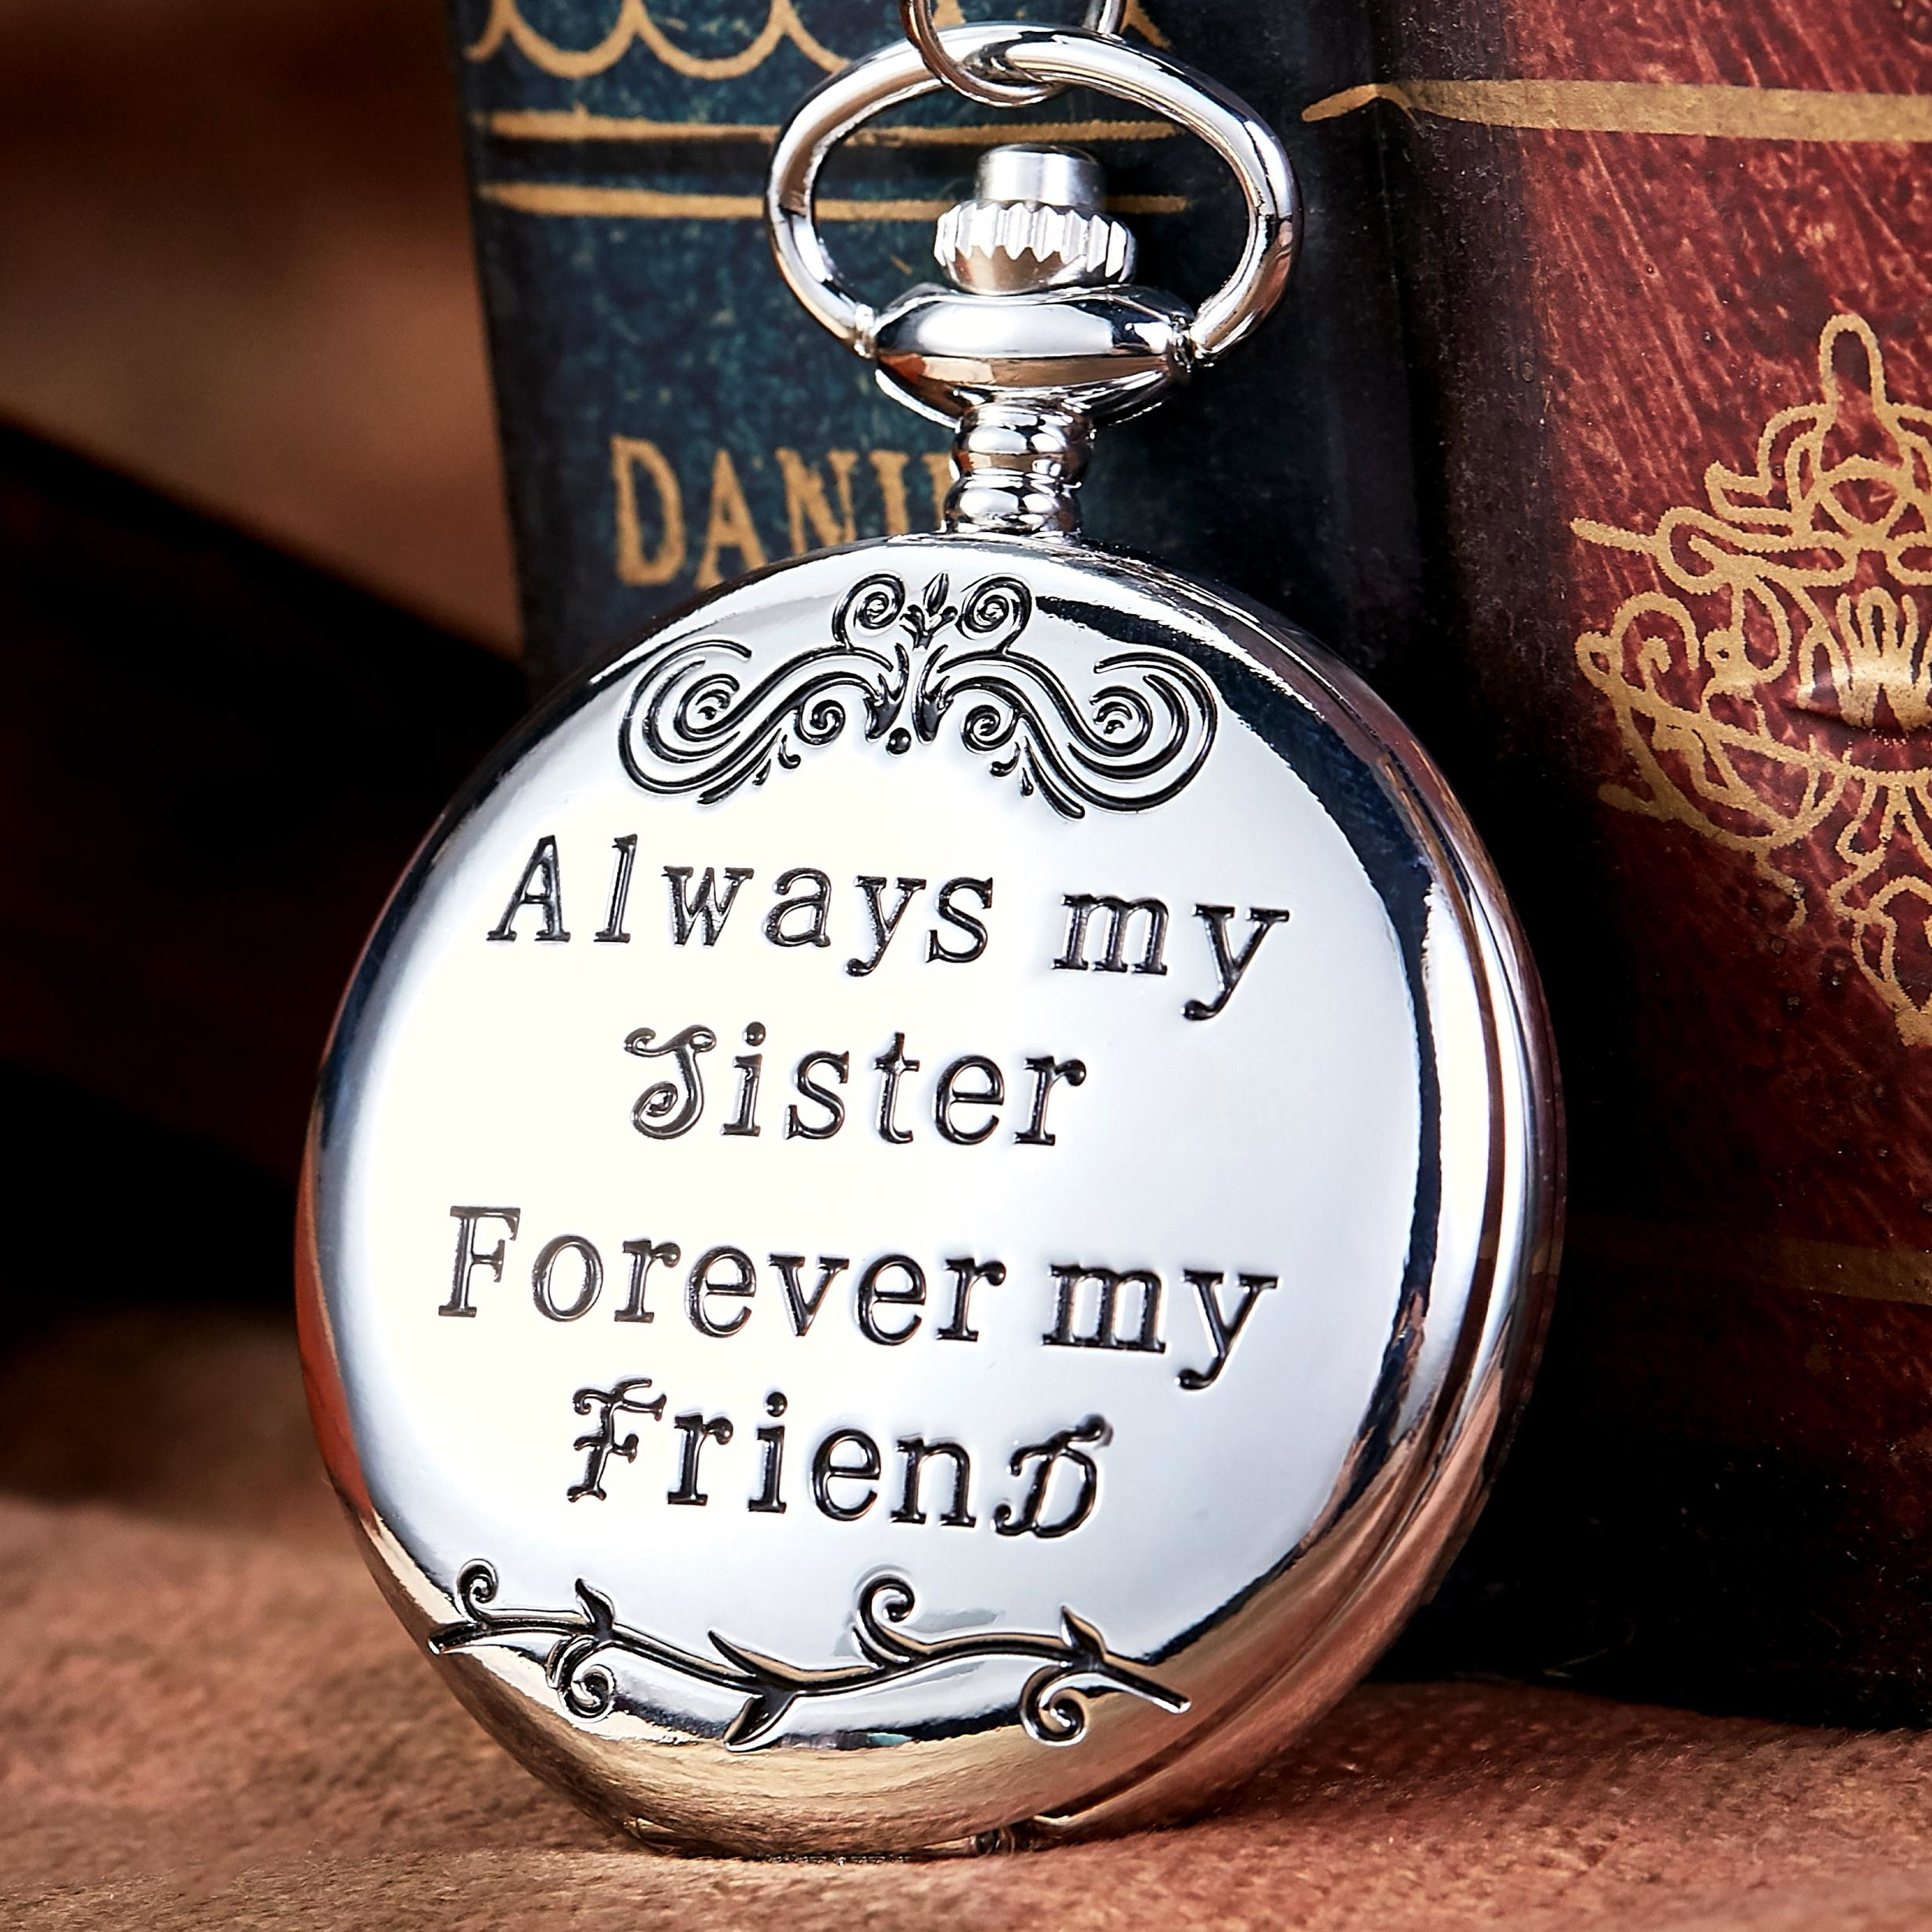 Vintage Quartz Pocket Watch Always My Sister Forever My Friend Pocket Watches With Fob Chain Necklace For Sister's Women's Gift